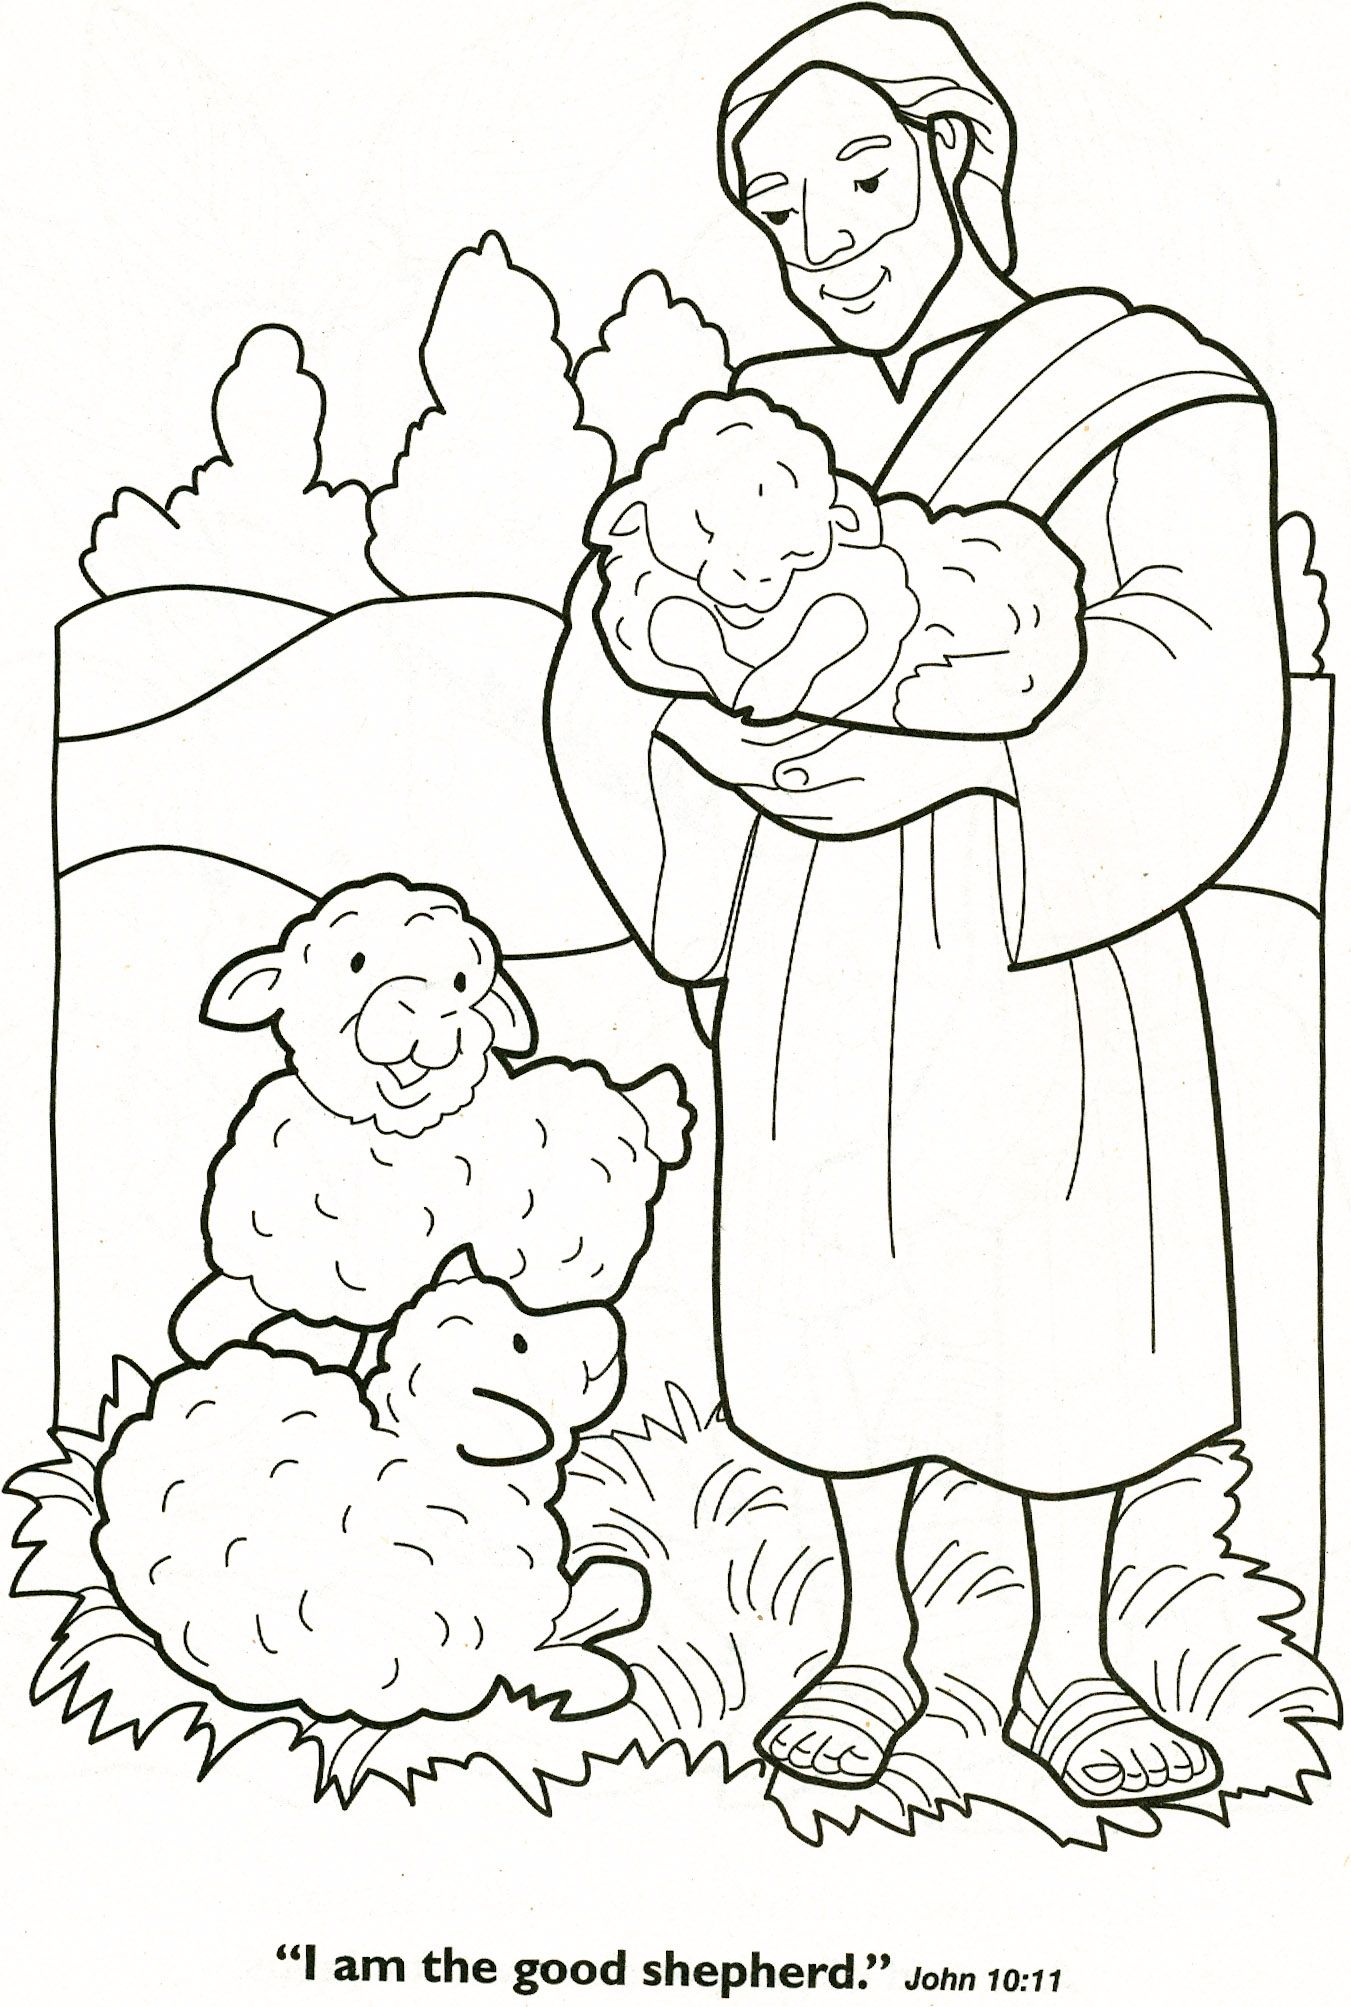 Lost Sheep Coloring Page Free Coloring Pages Download | Xsibe ...